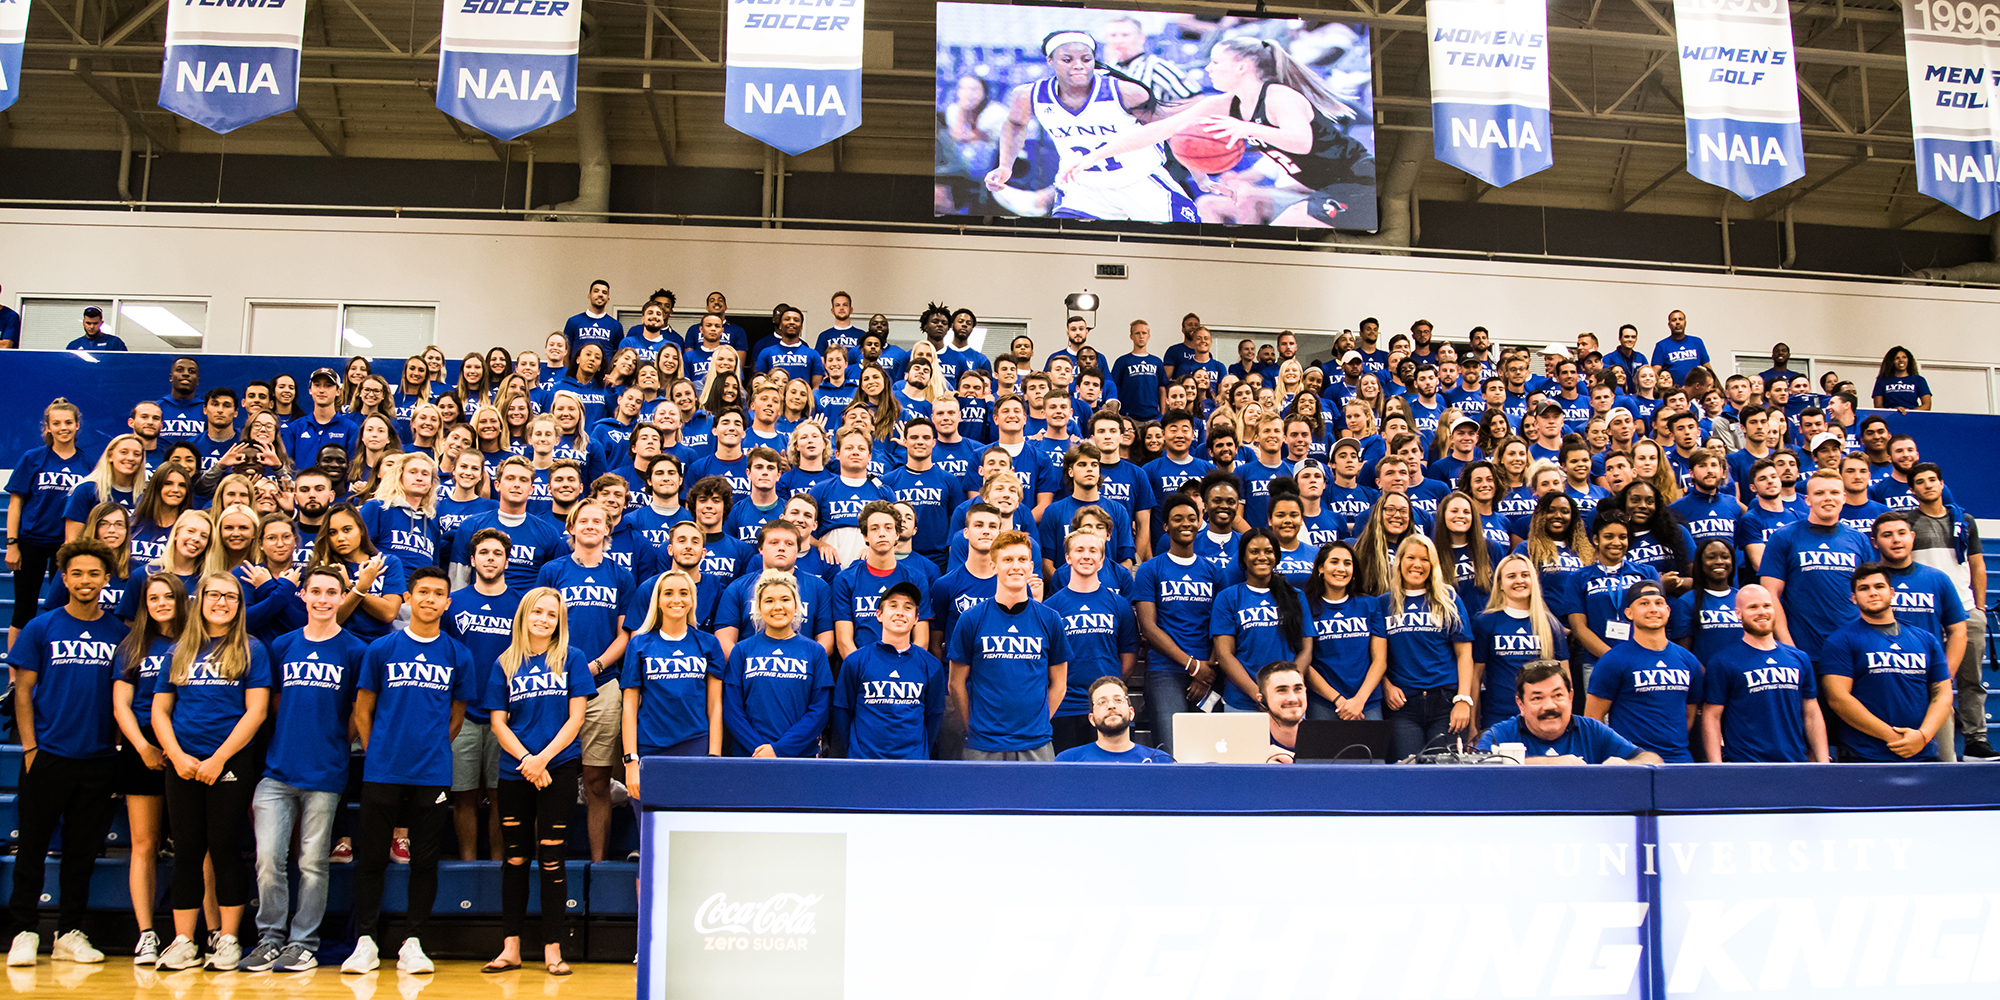 Lynn's Student-Athletes Continue to Display Academic Excellence